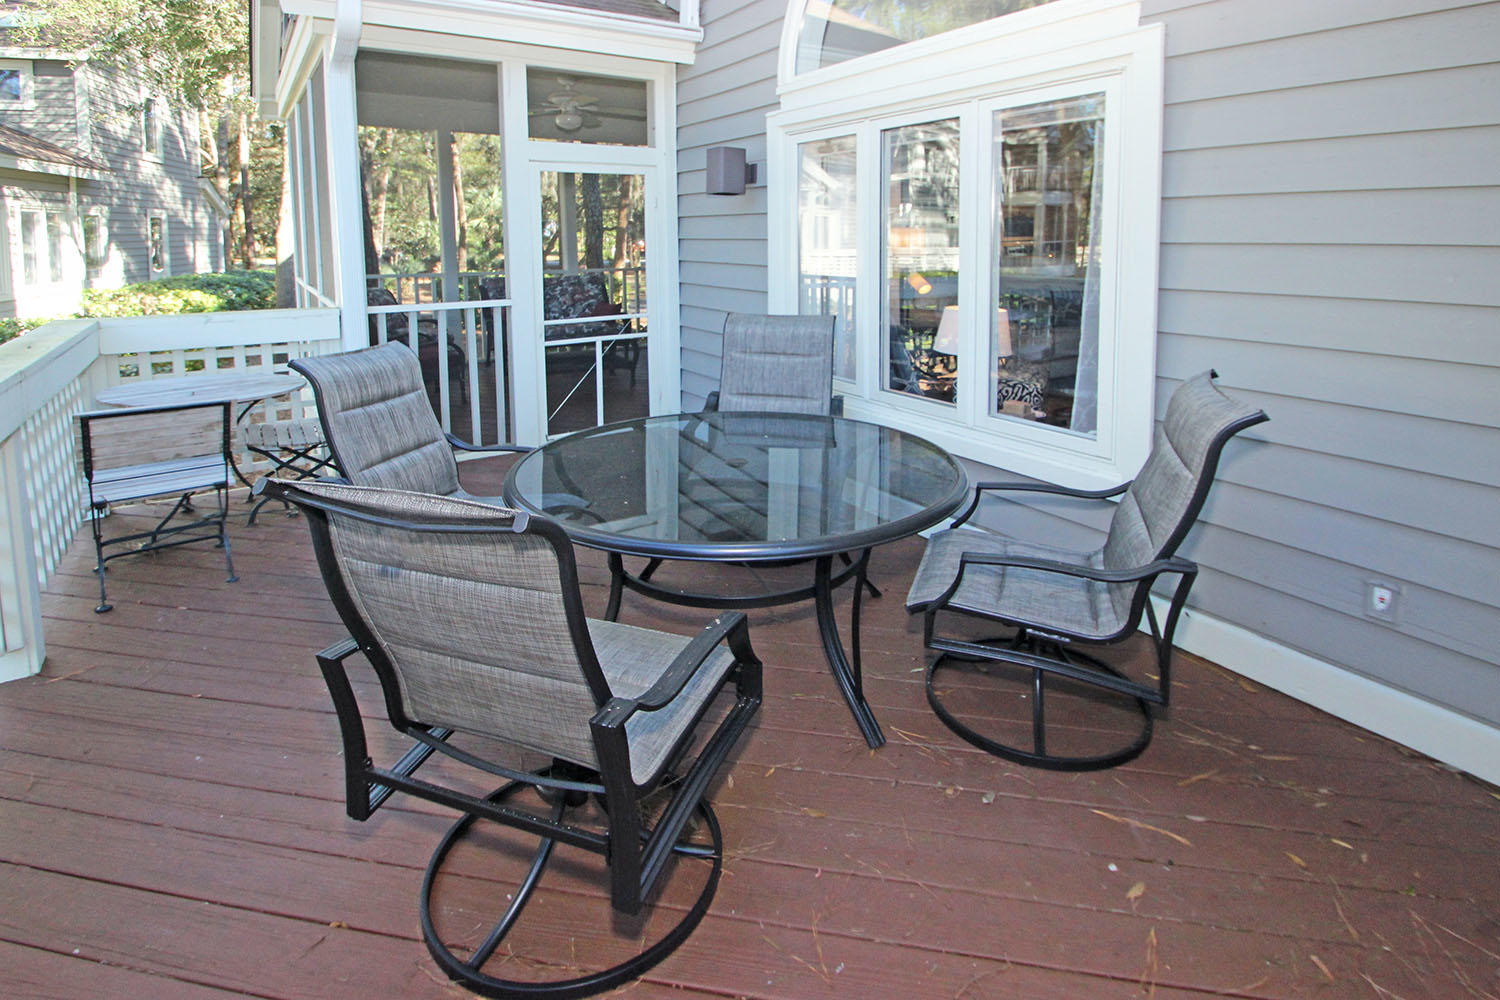 Back deck with table and chairs